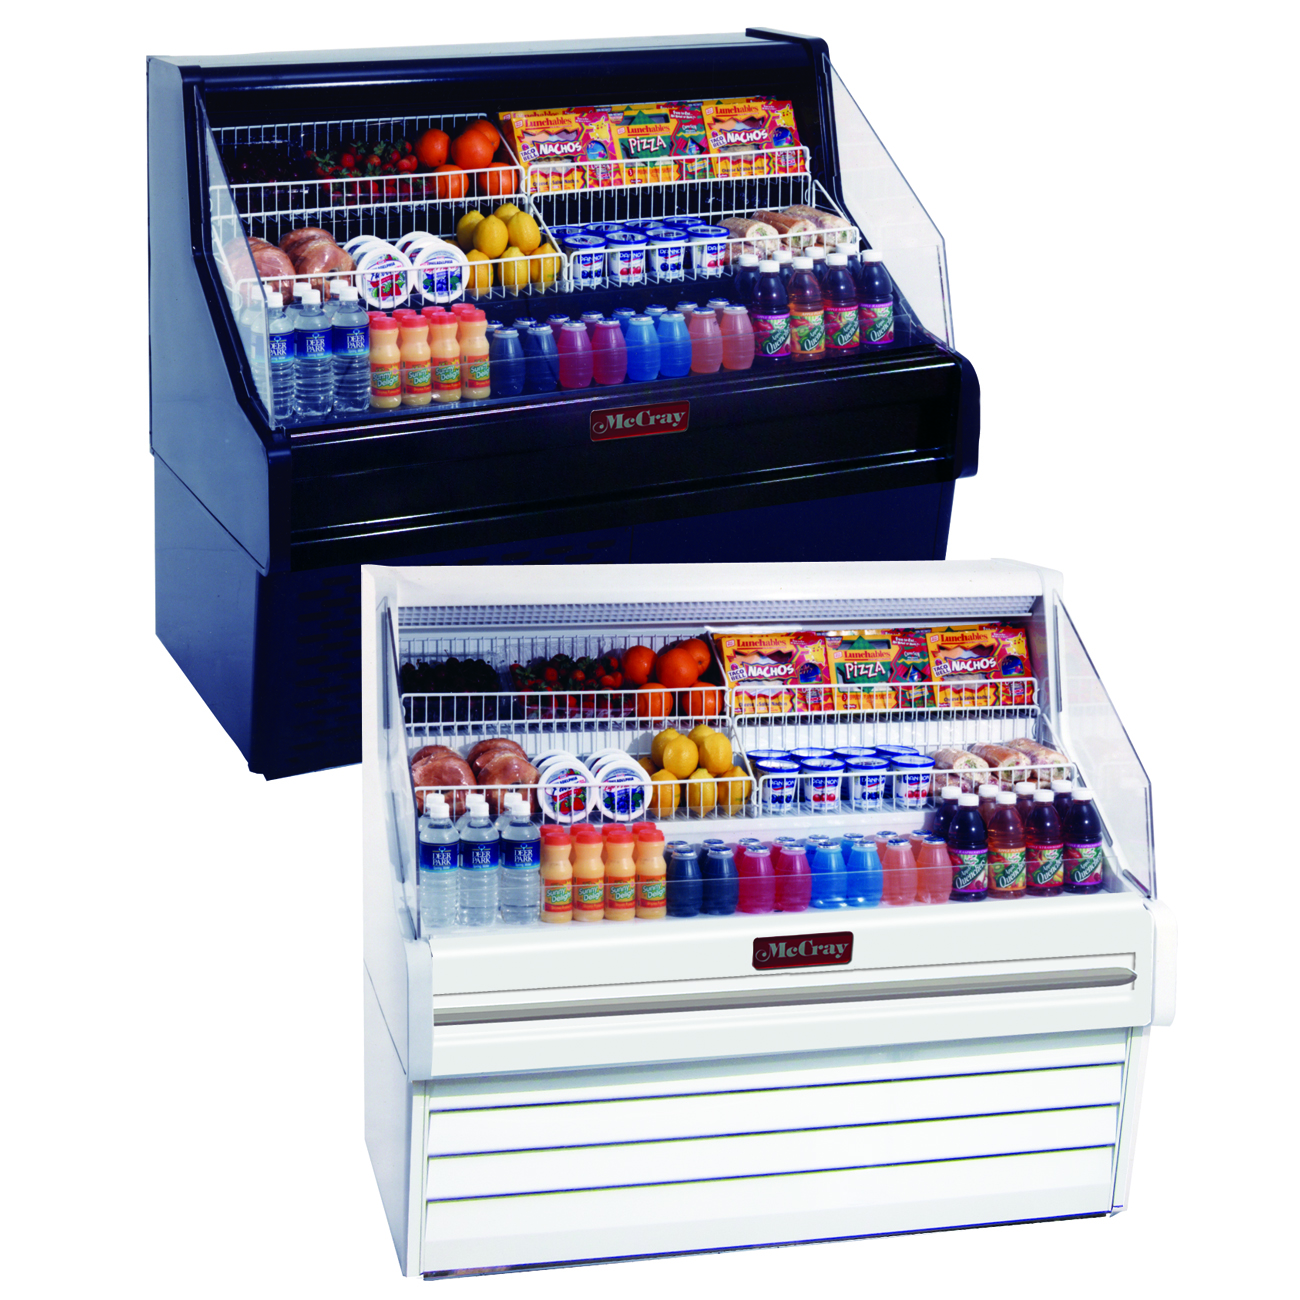 Howard-McCray SC-OS30E-5-LED merchandiser, open refrigerated display